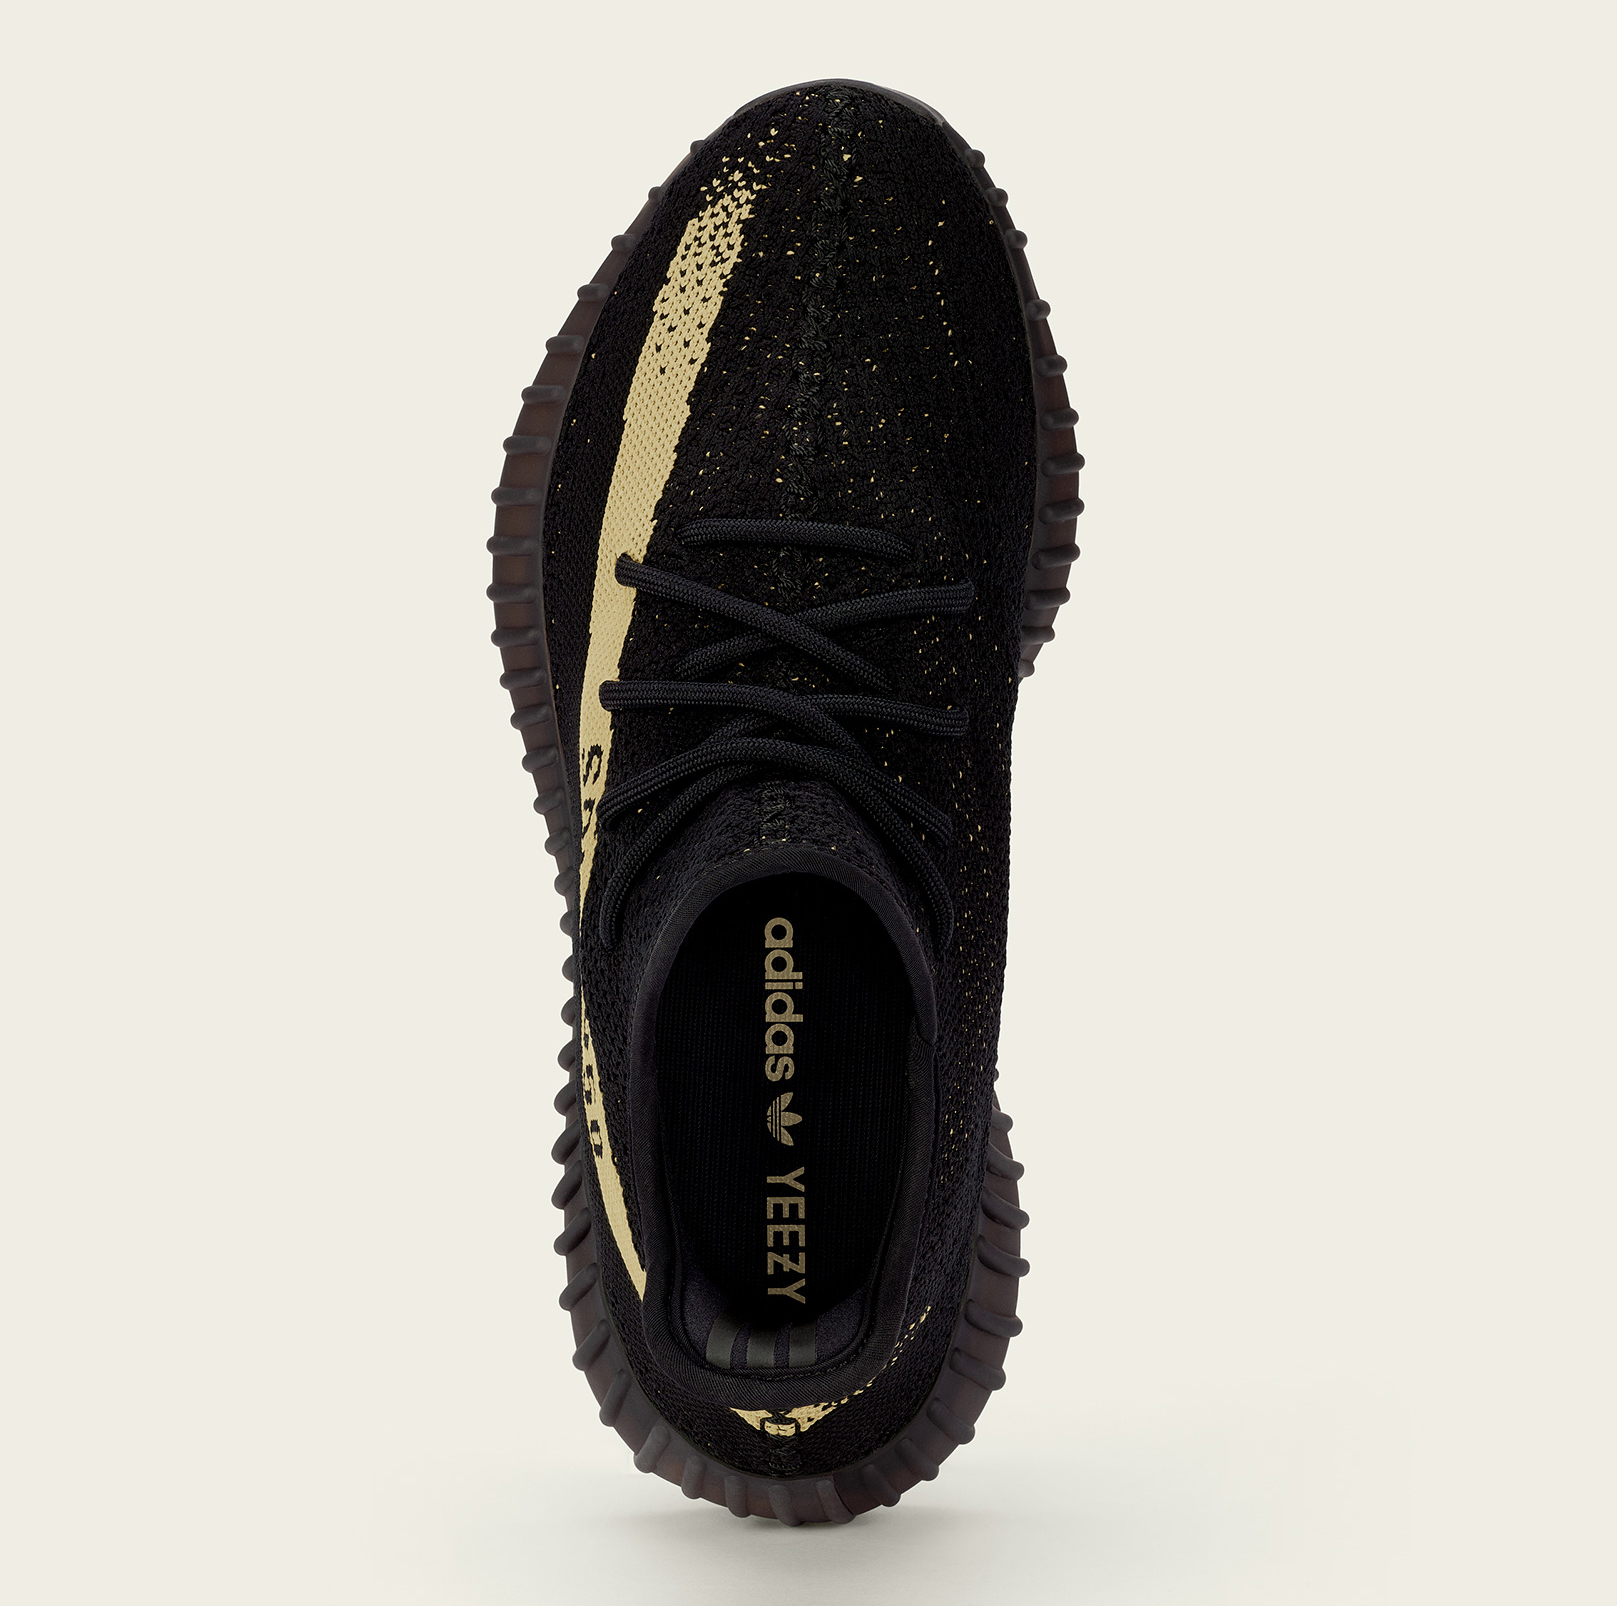 new arrival 972bd a6ec7 Image via Adidas Yeezy Boost Black Green Top